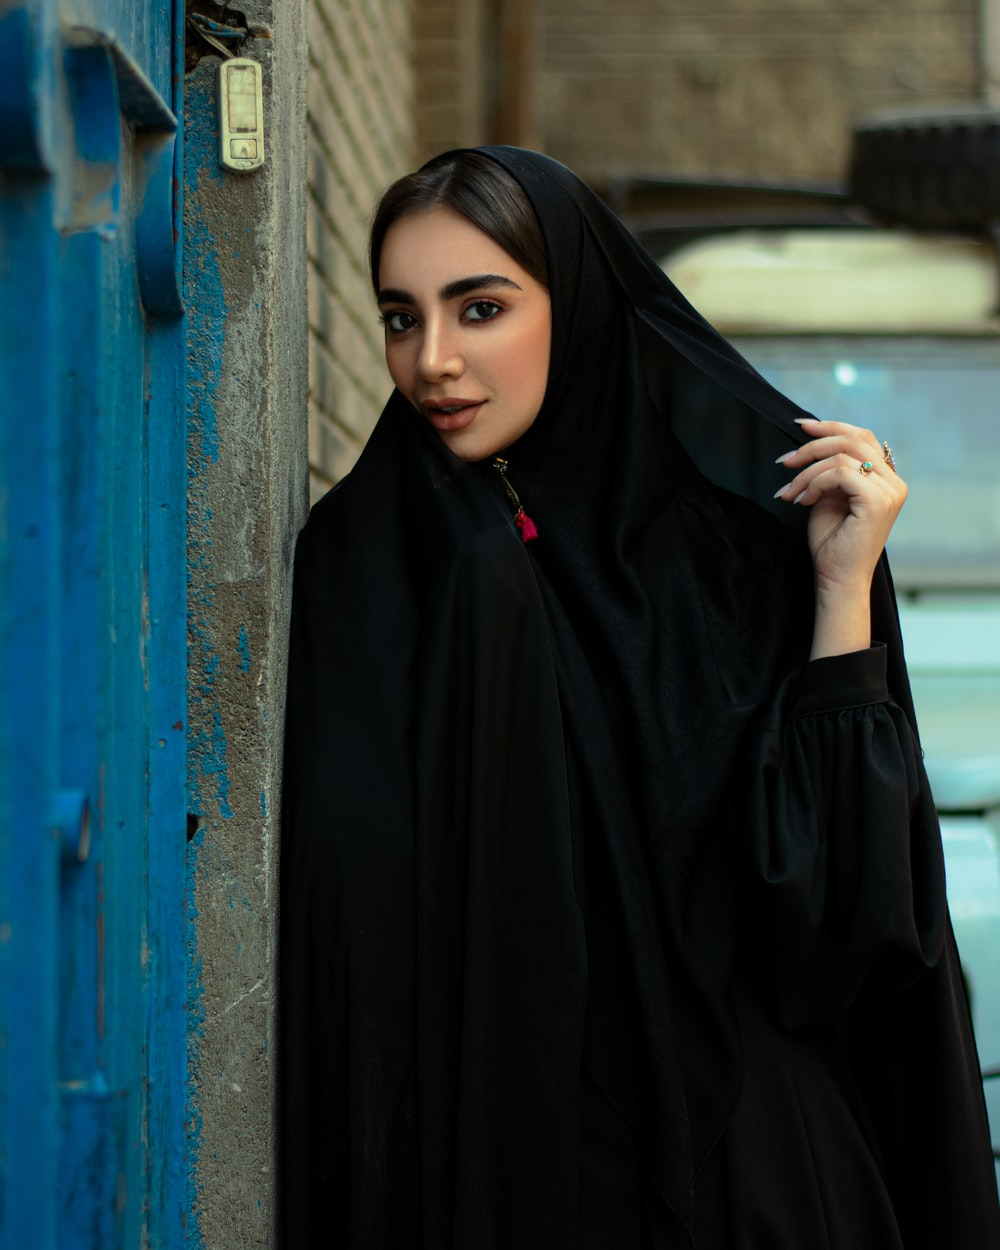 woman in black hijab standing beside blue wall